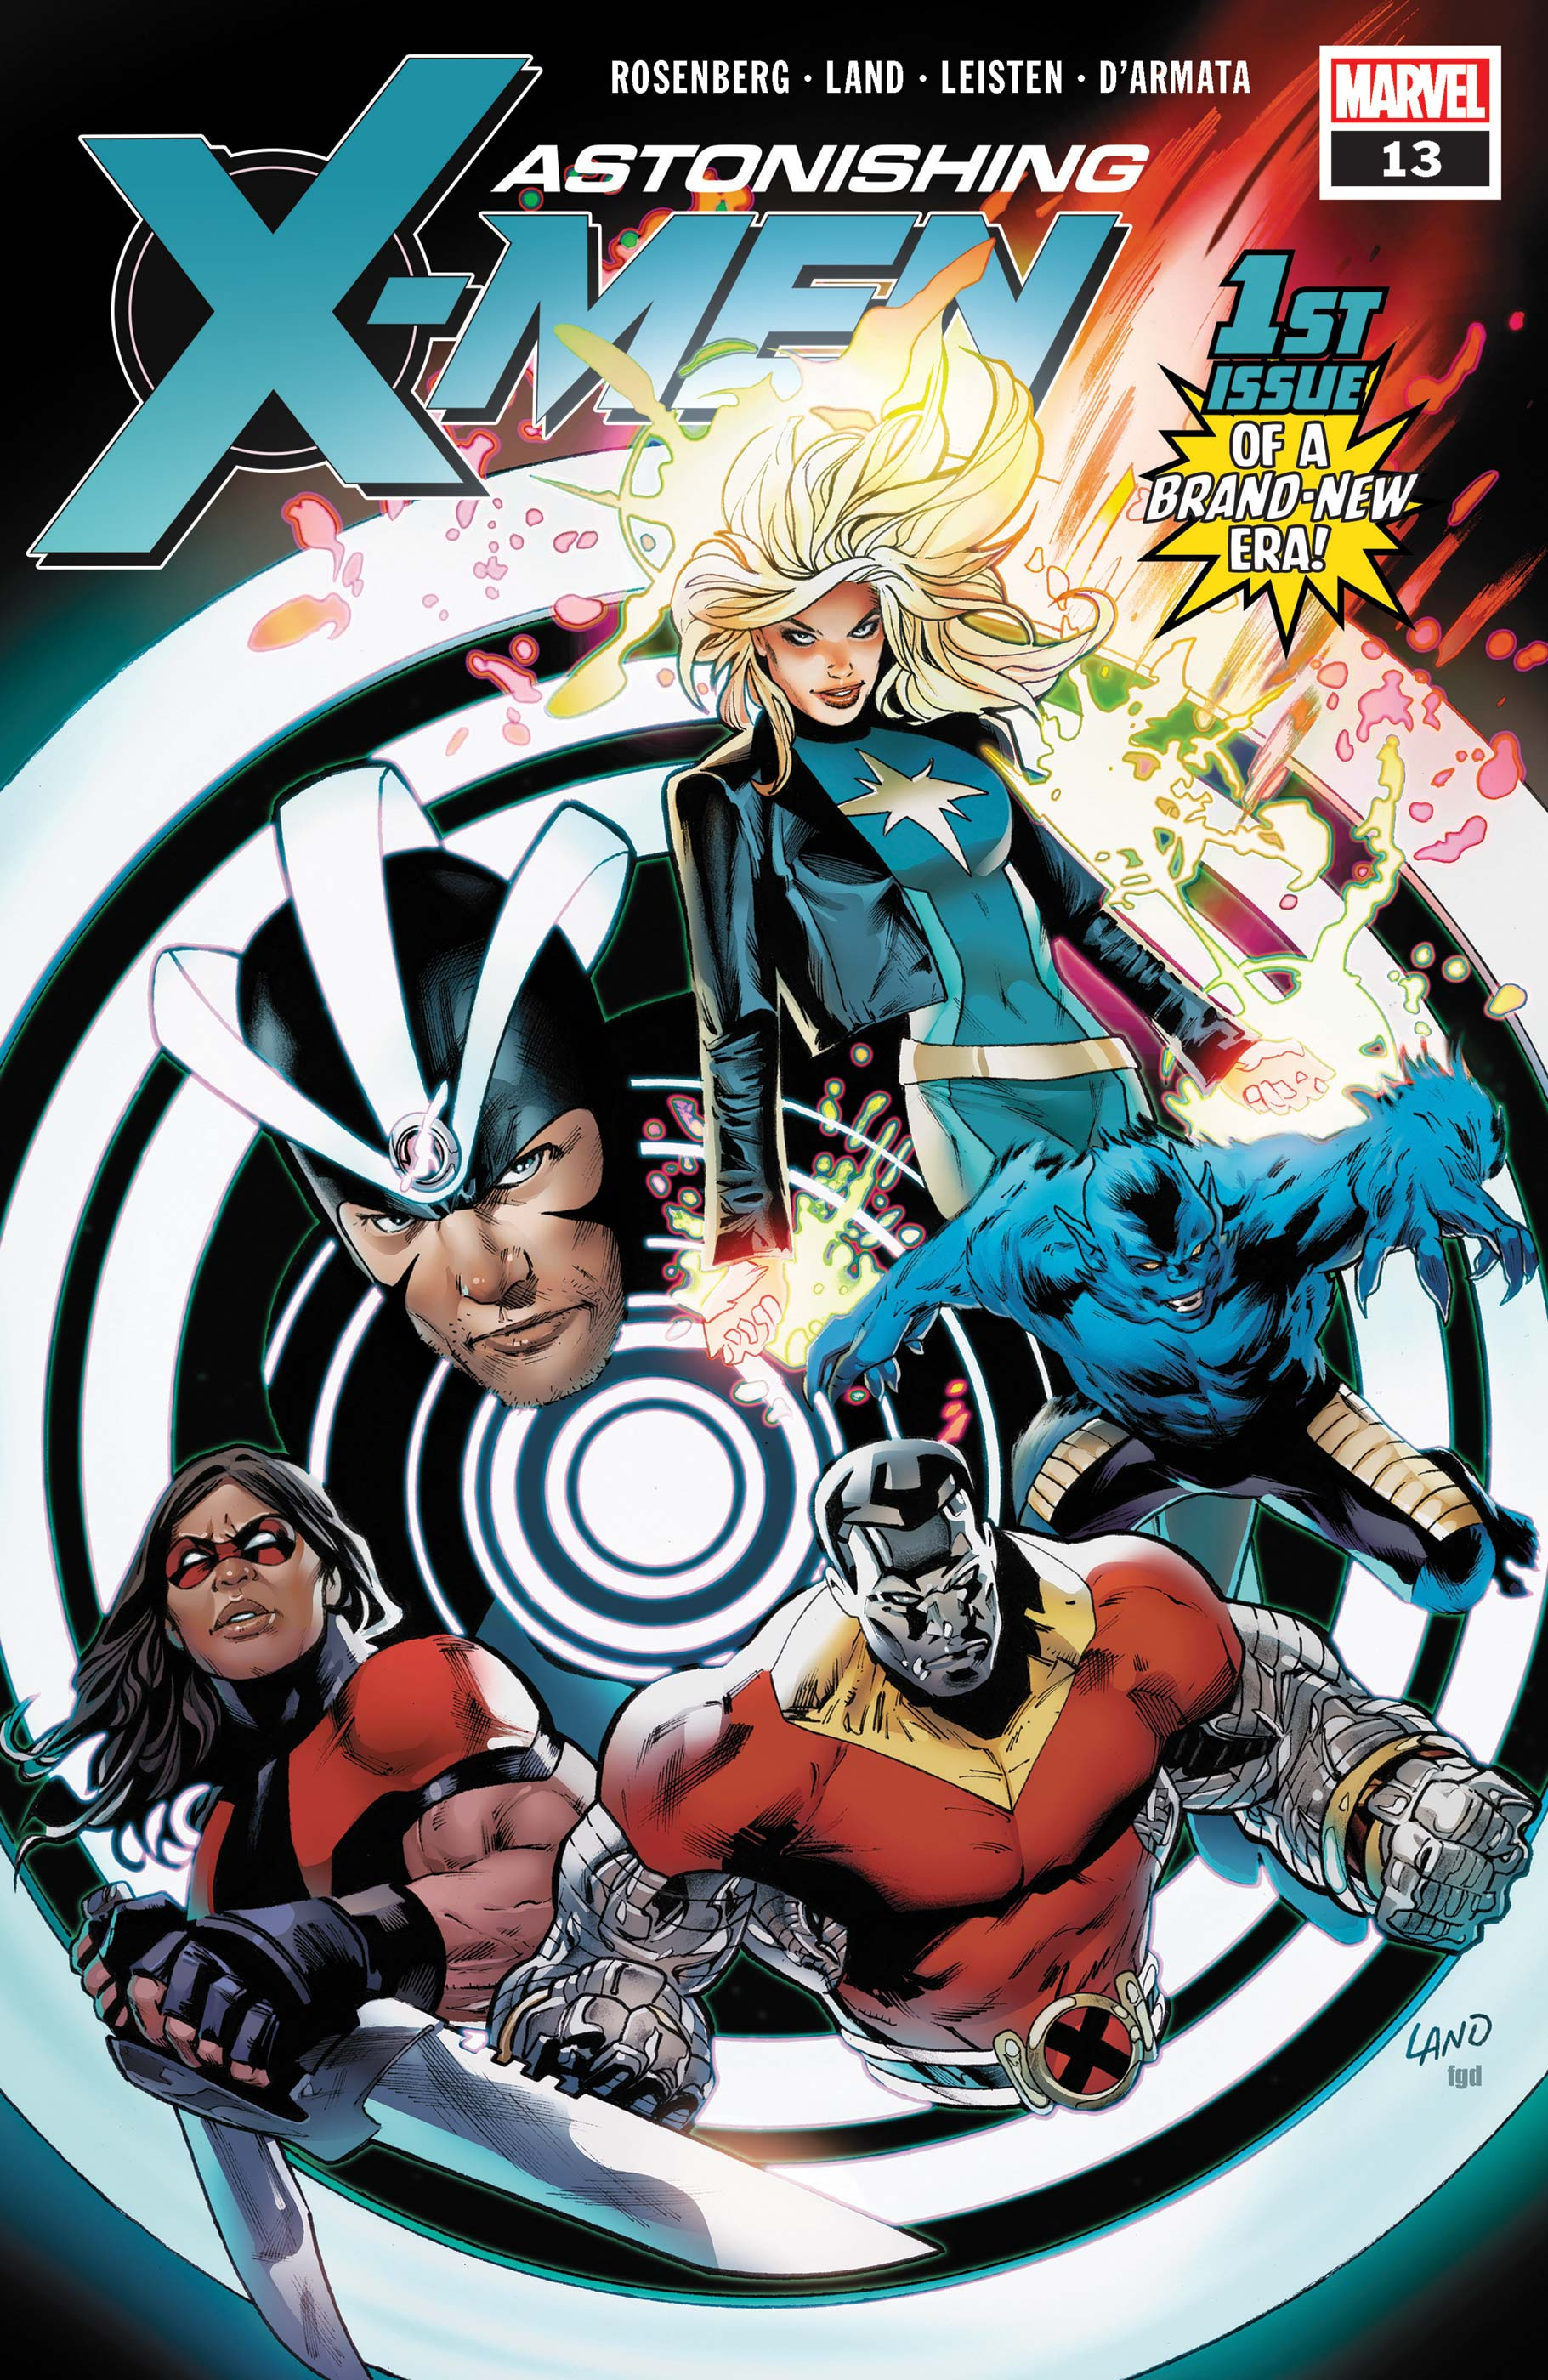 Astonishing X-Men (2017) #13